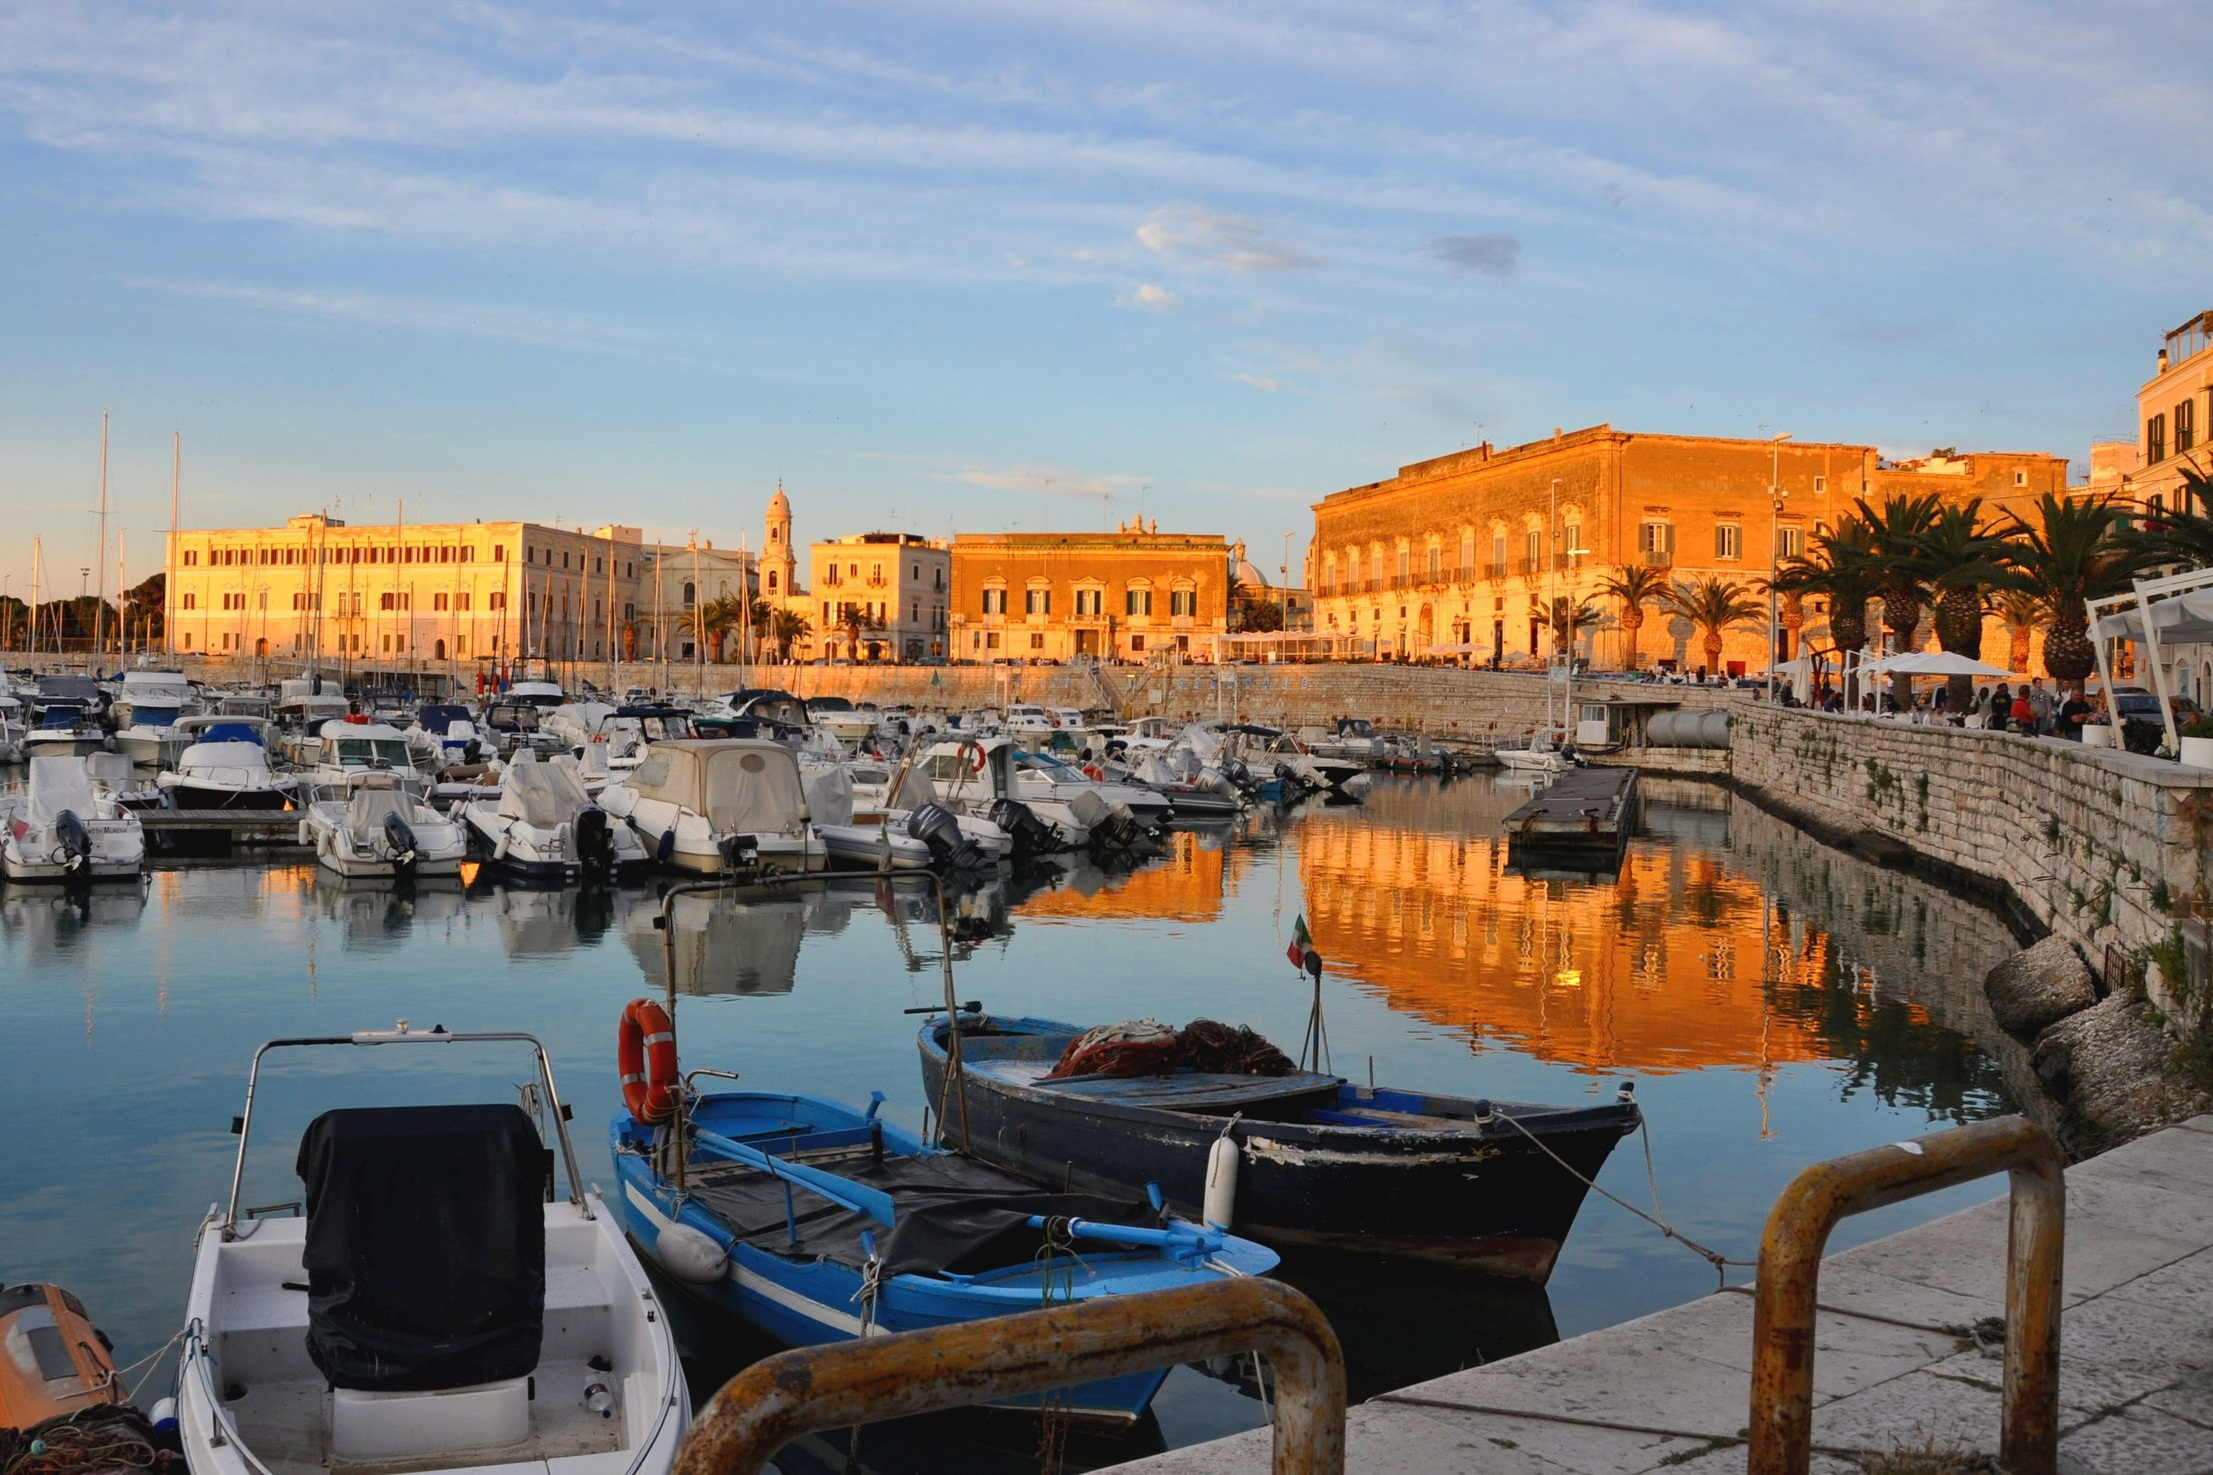 Roman, Jewish, Spanish and Venetian settlement - Trani harbour